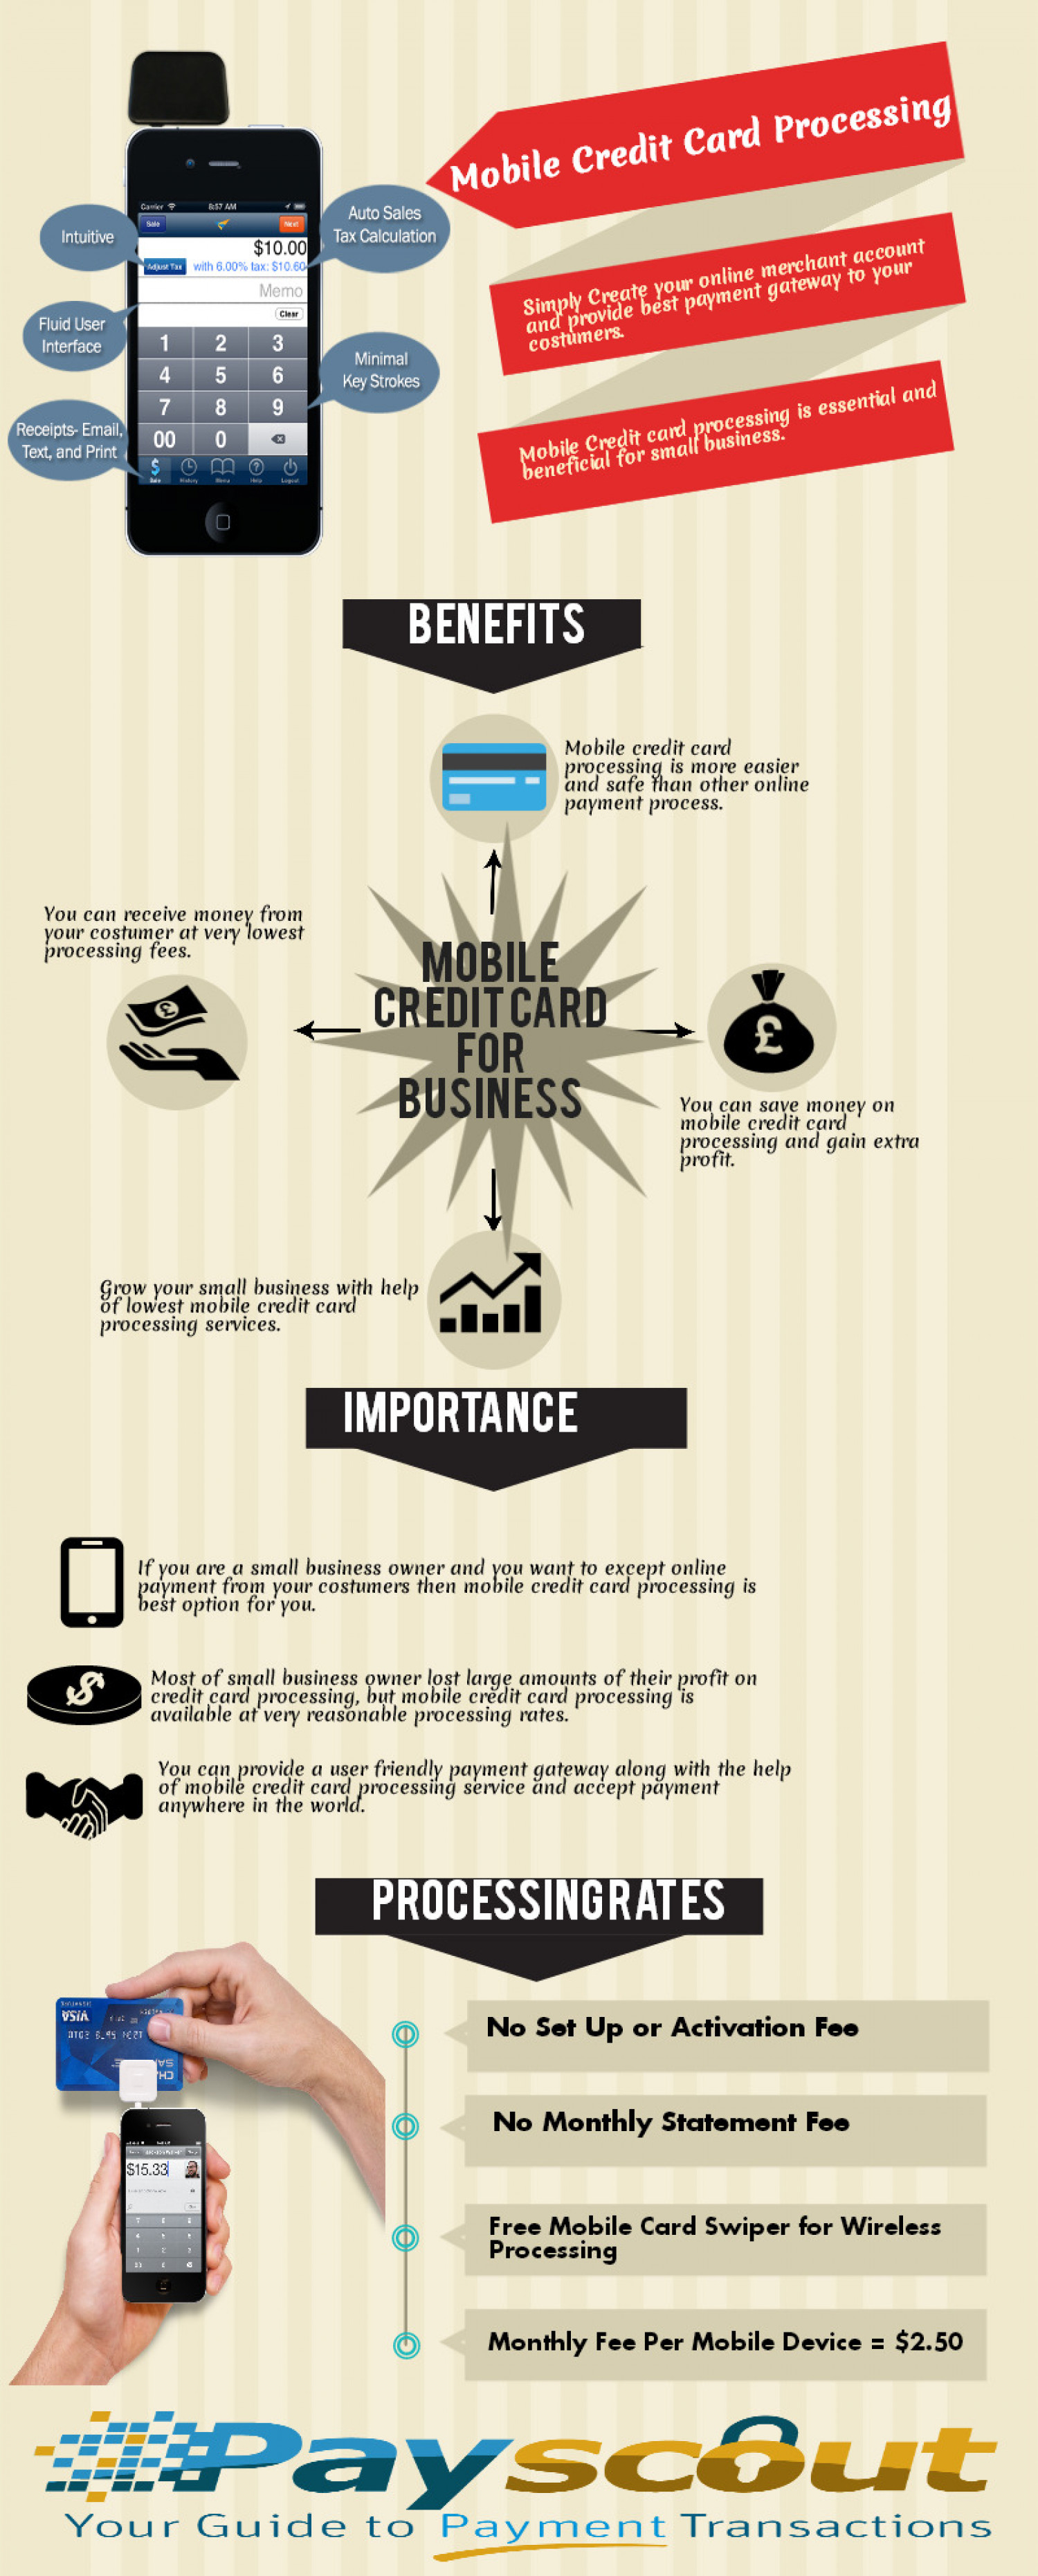 Benefits of Mobile Credit Card Processing Infographic